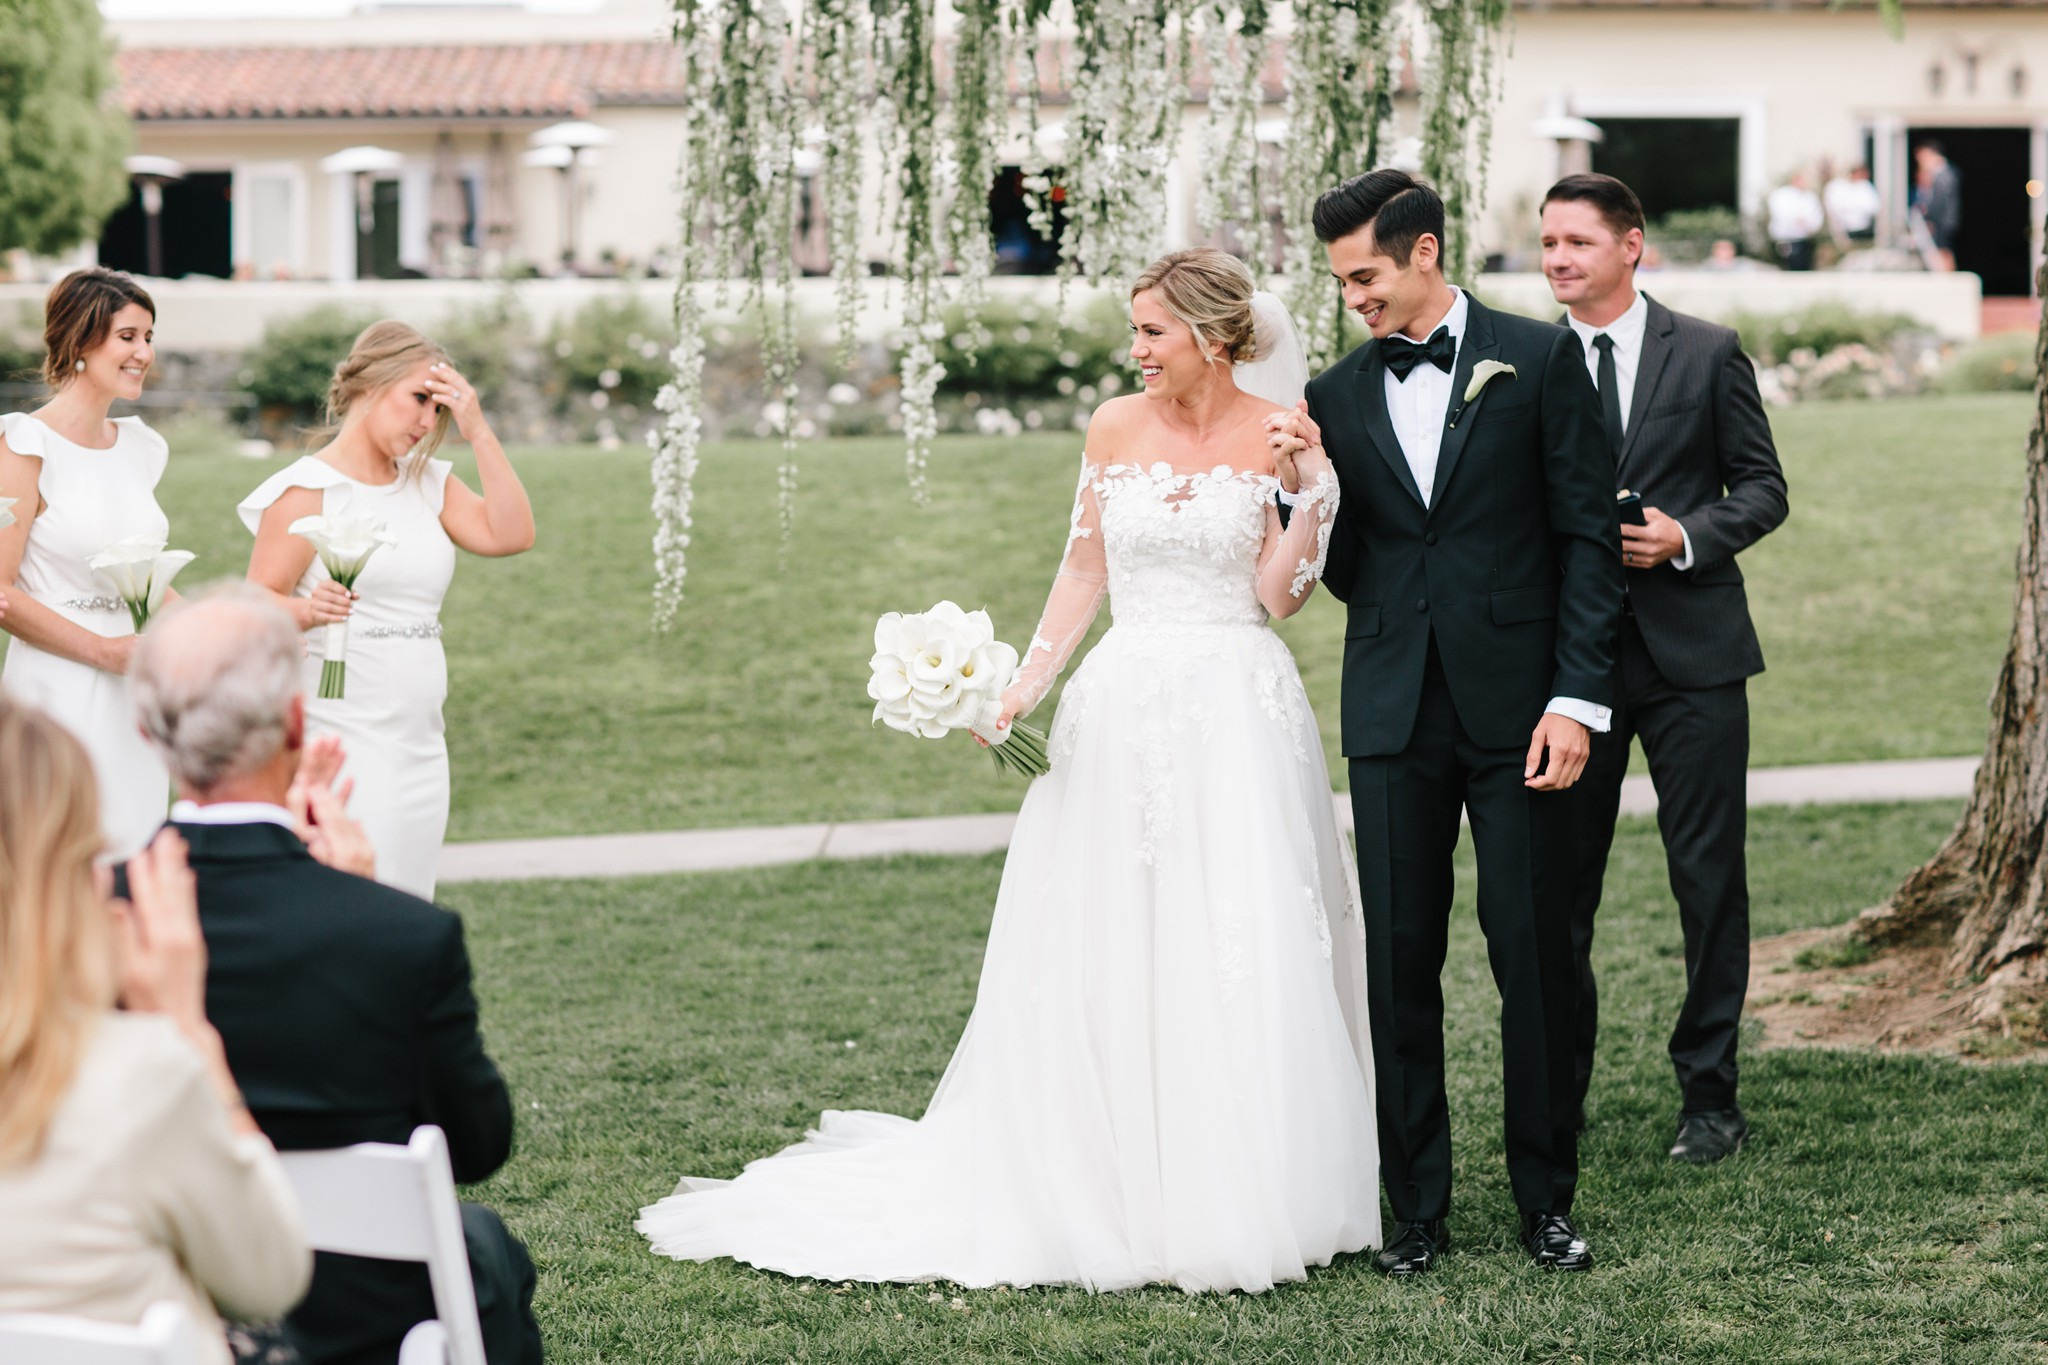 155 THEDELAURAS_THE_INN_AT_RANCHO_SANTA_FE_WEDDING_CEREMONY FLOWERS_BLOG155.jpg